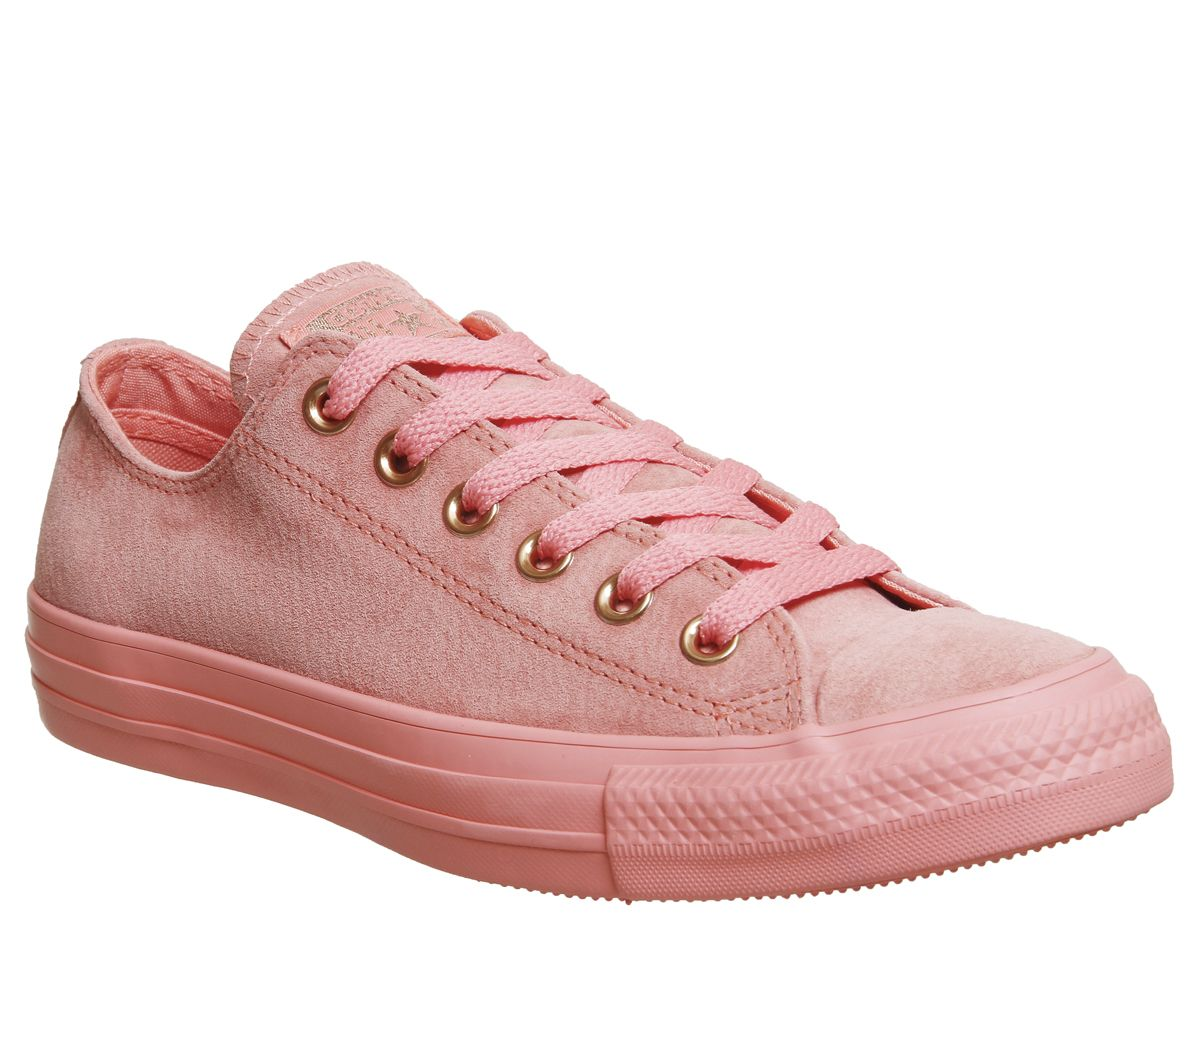 7834c808c3e7 Converse All Star Low Leather Hot Punch Mono Exclusive - Hers trainers